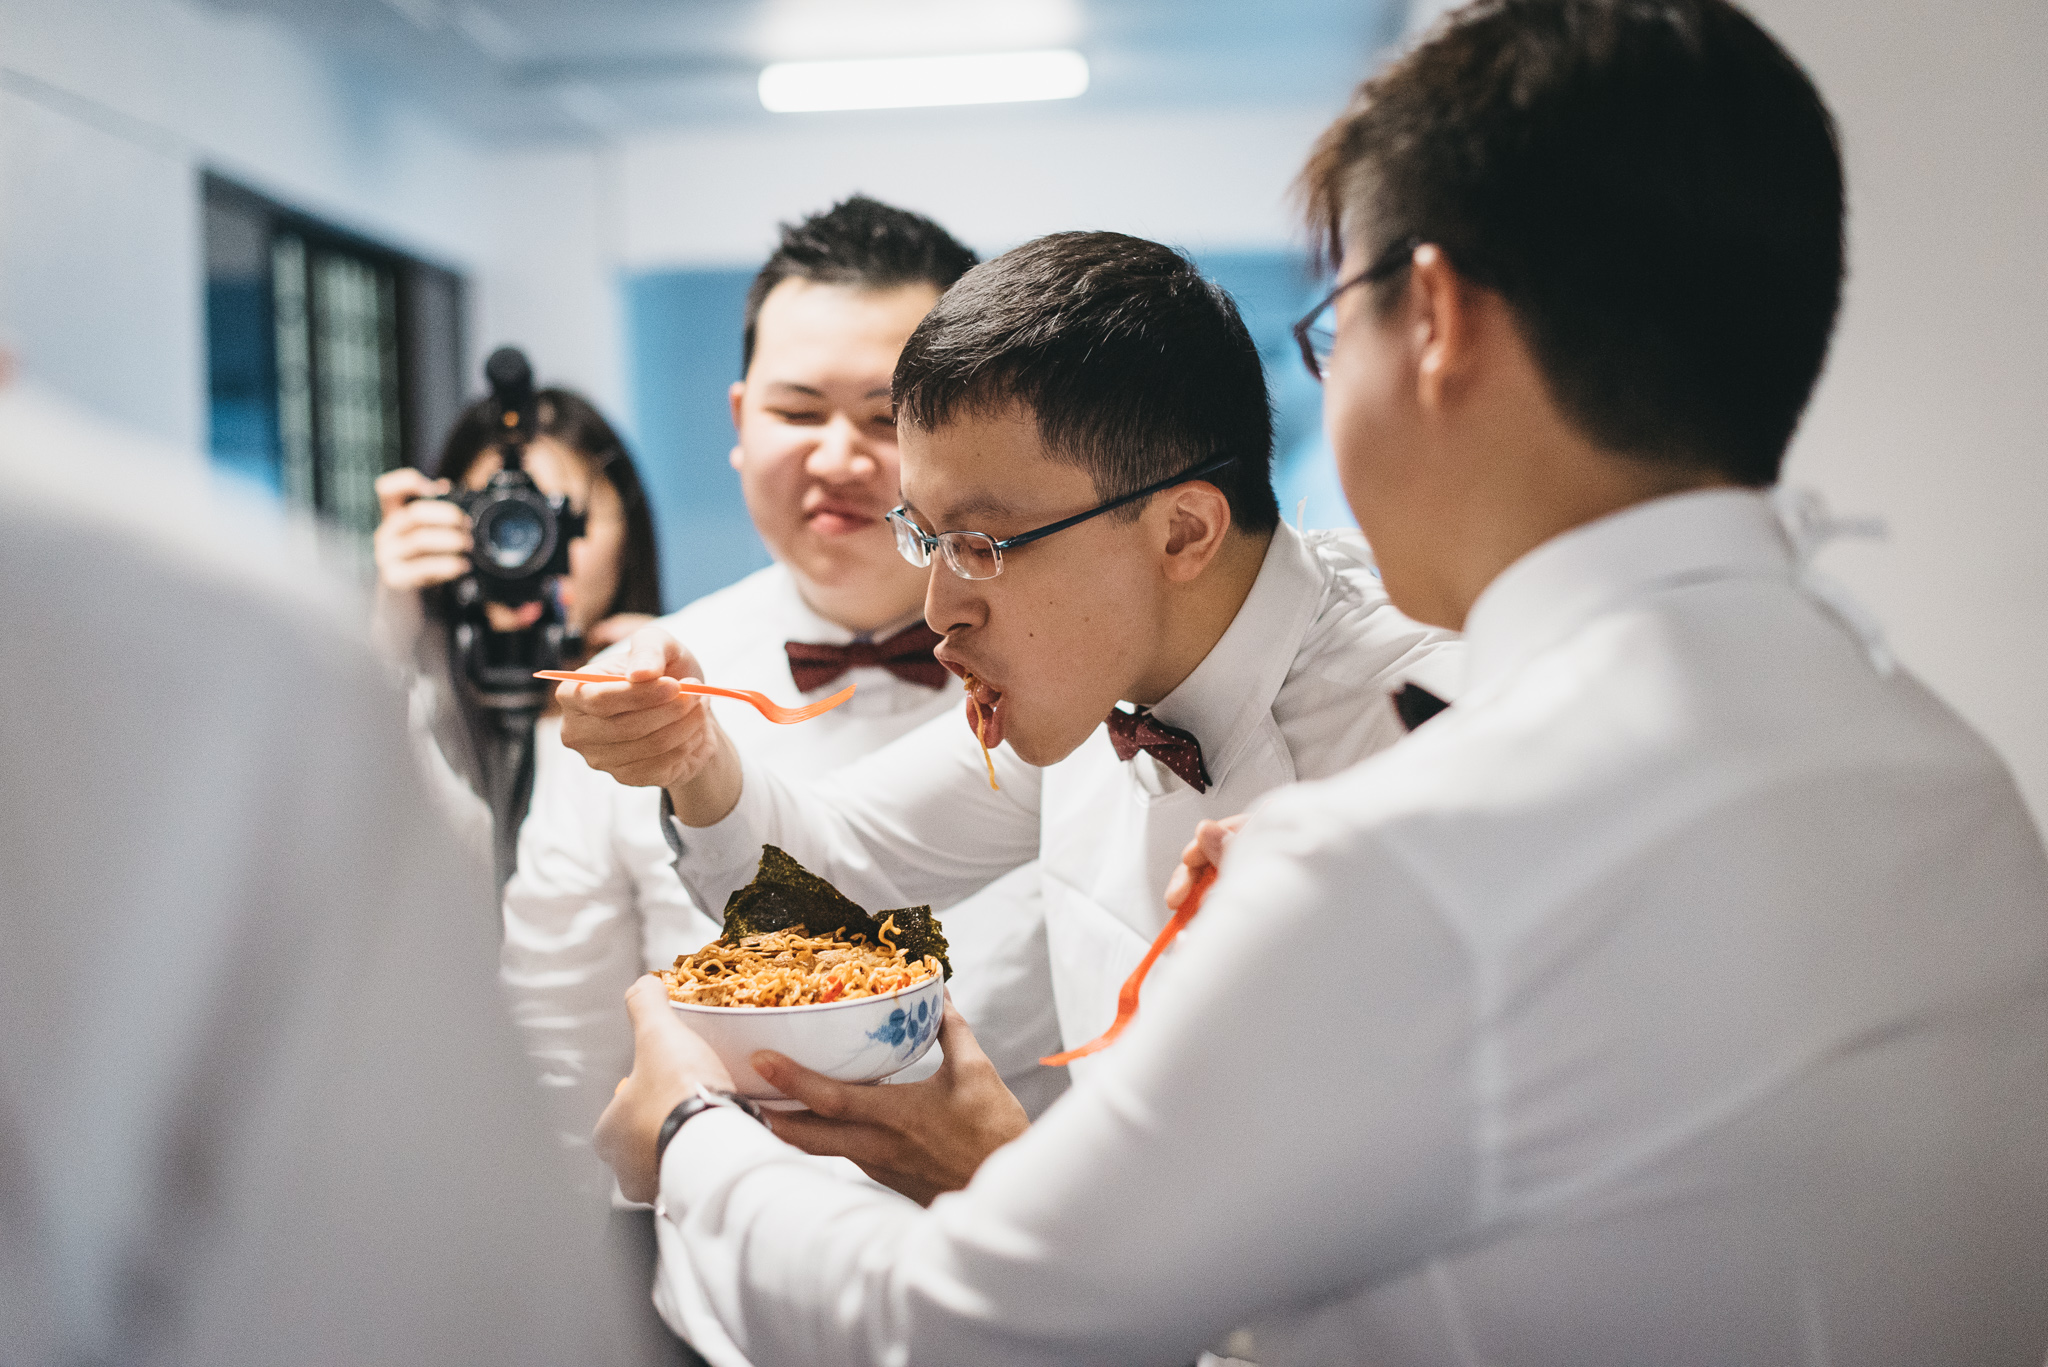 Fiona & Terence Wedding Day Highlights (resized for sharing) - 070.jpg